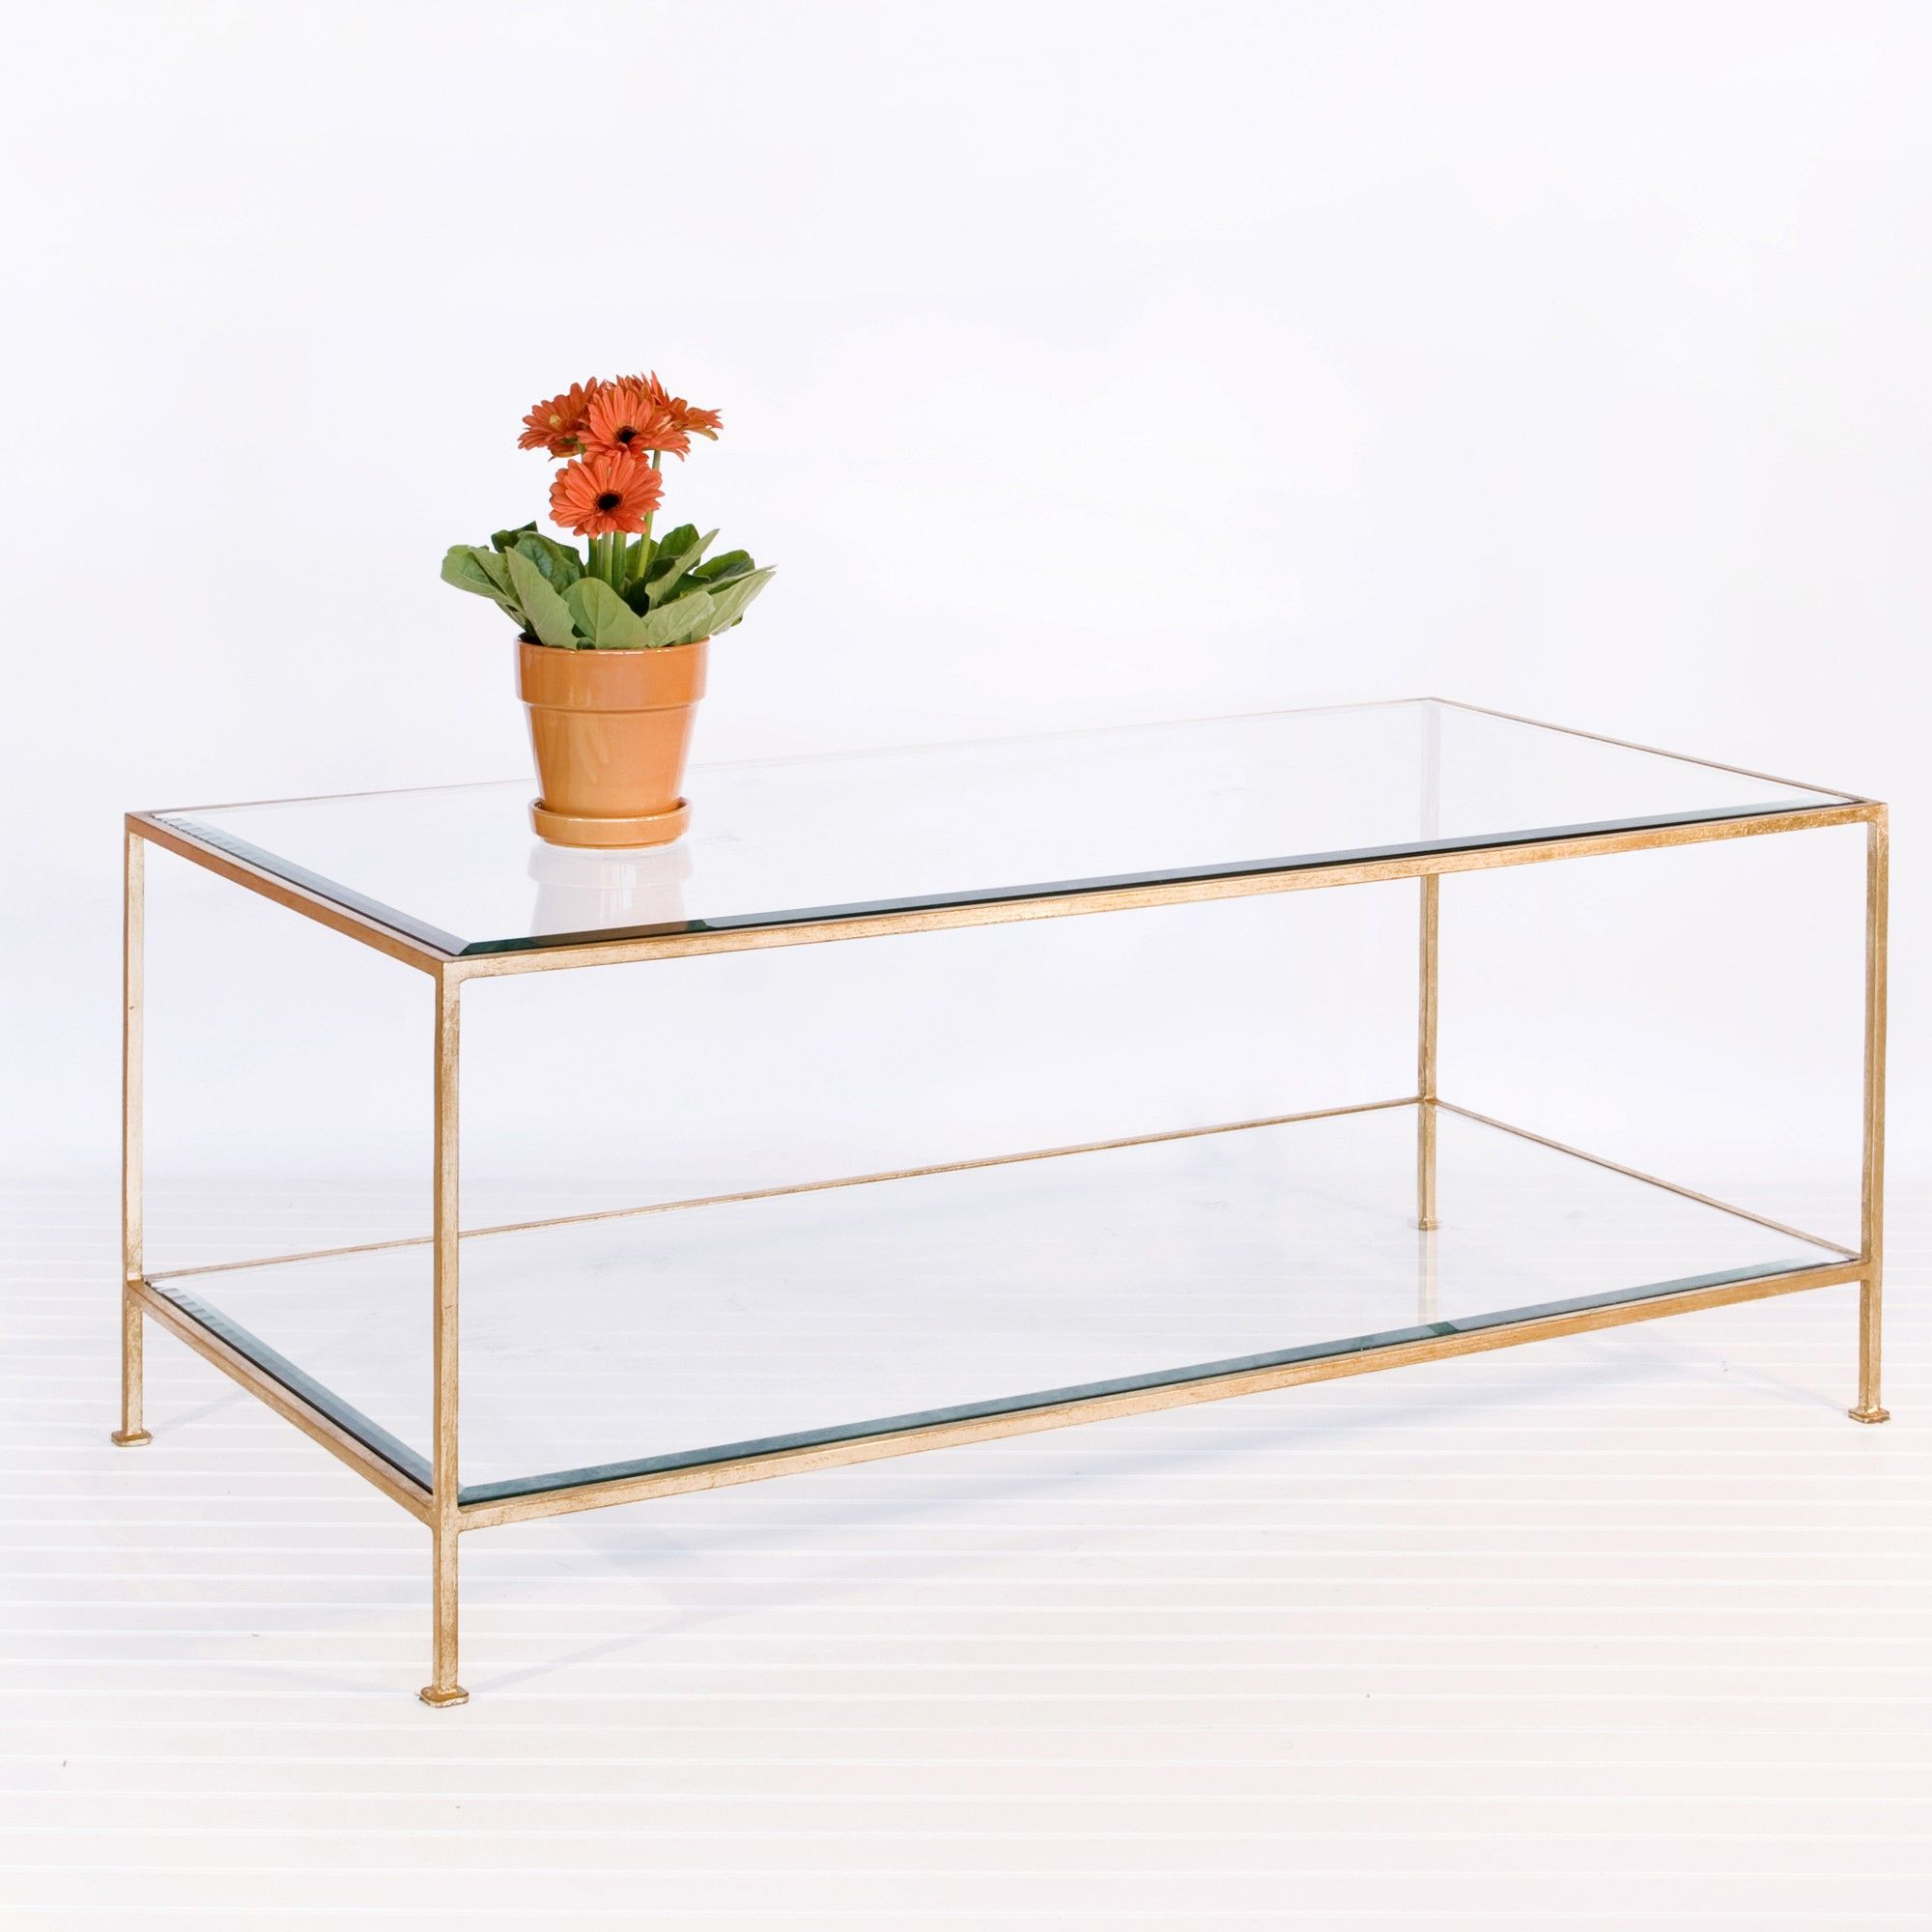 Hammered gold leaf with beveled glass shelves